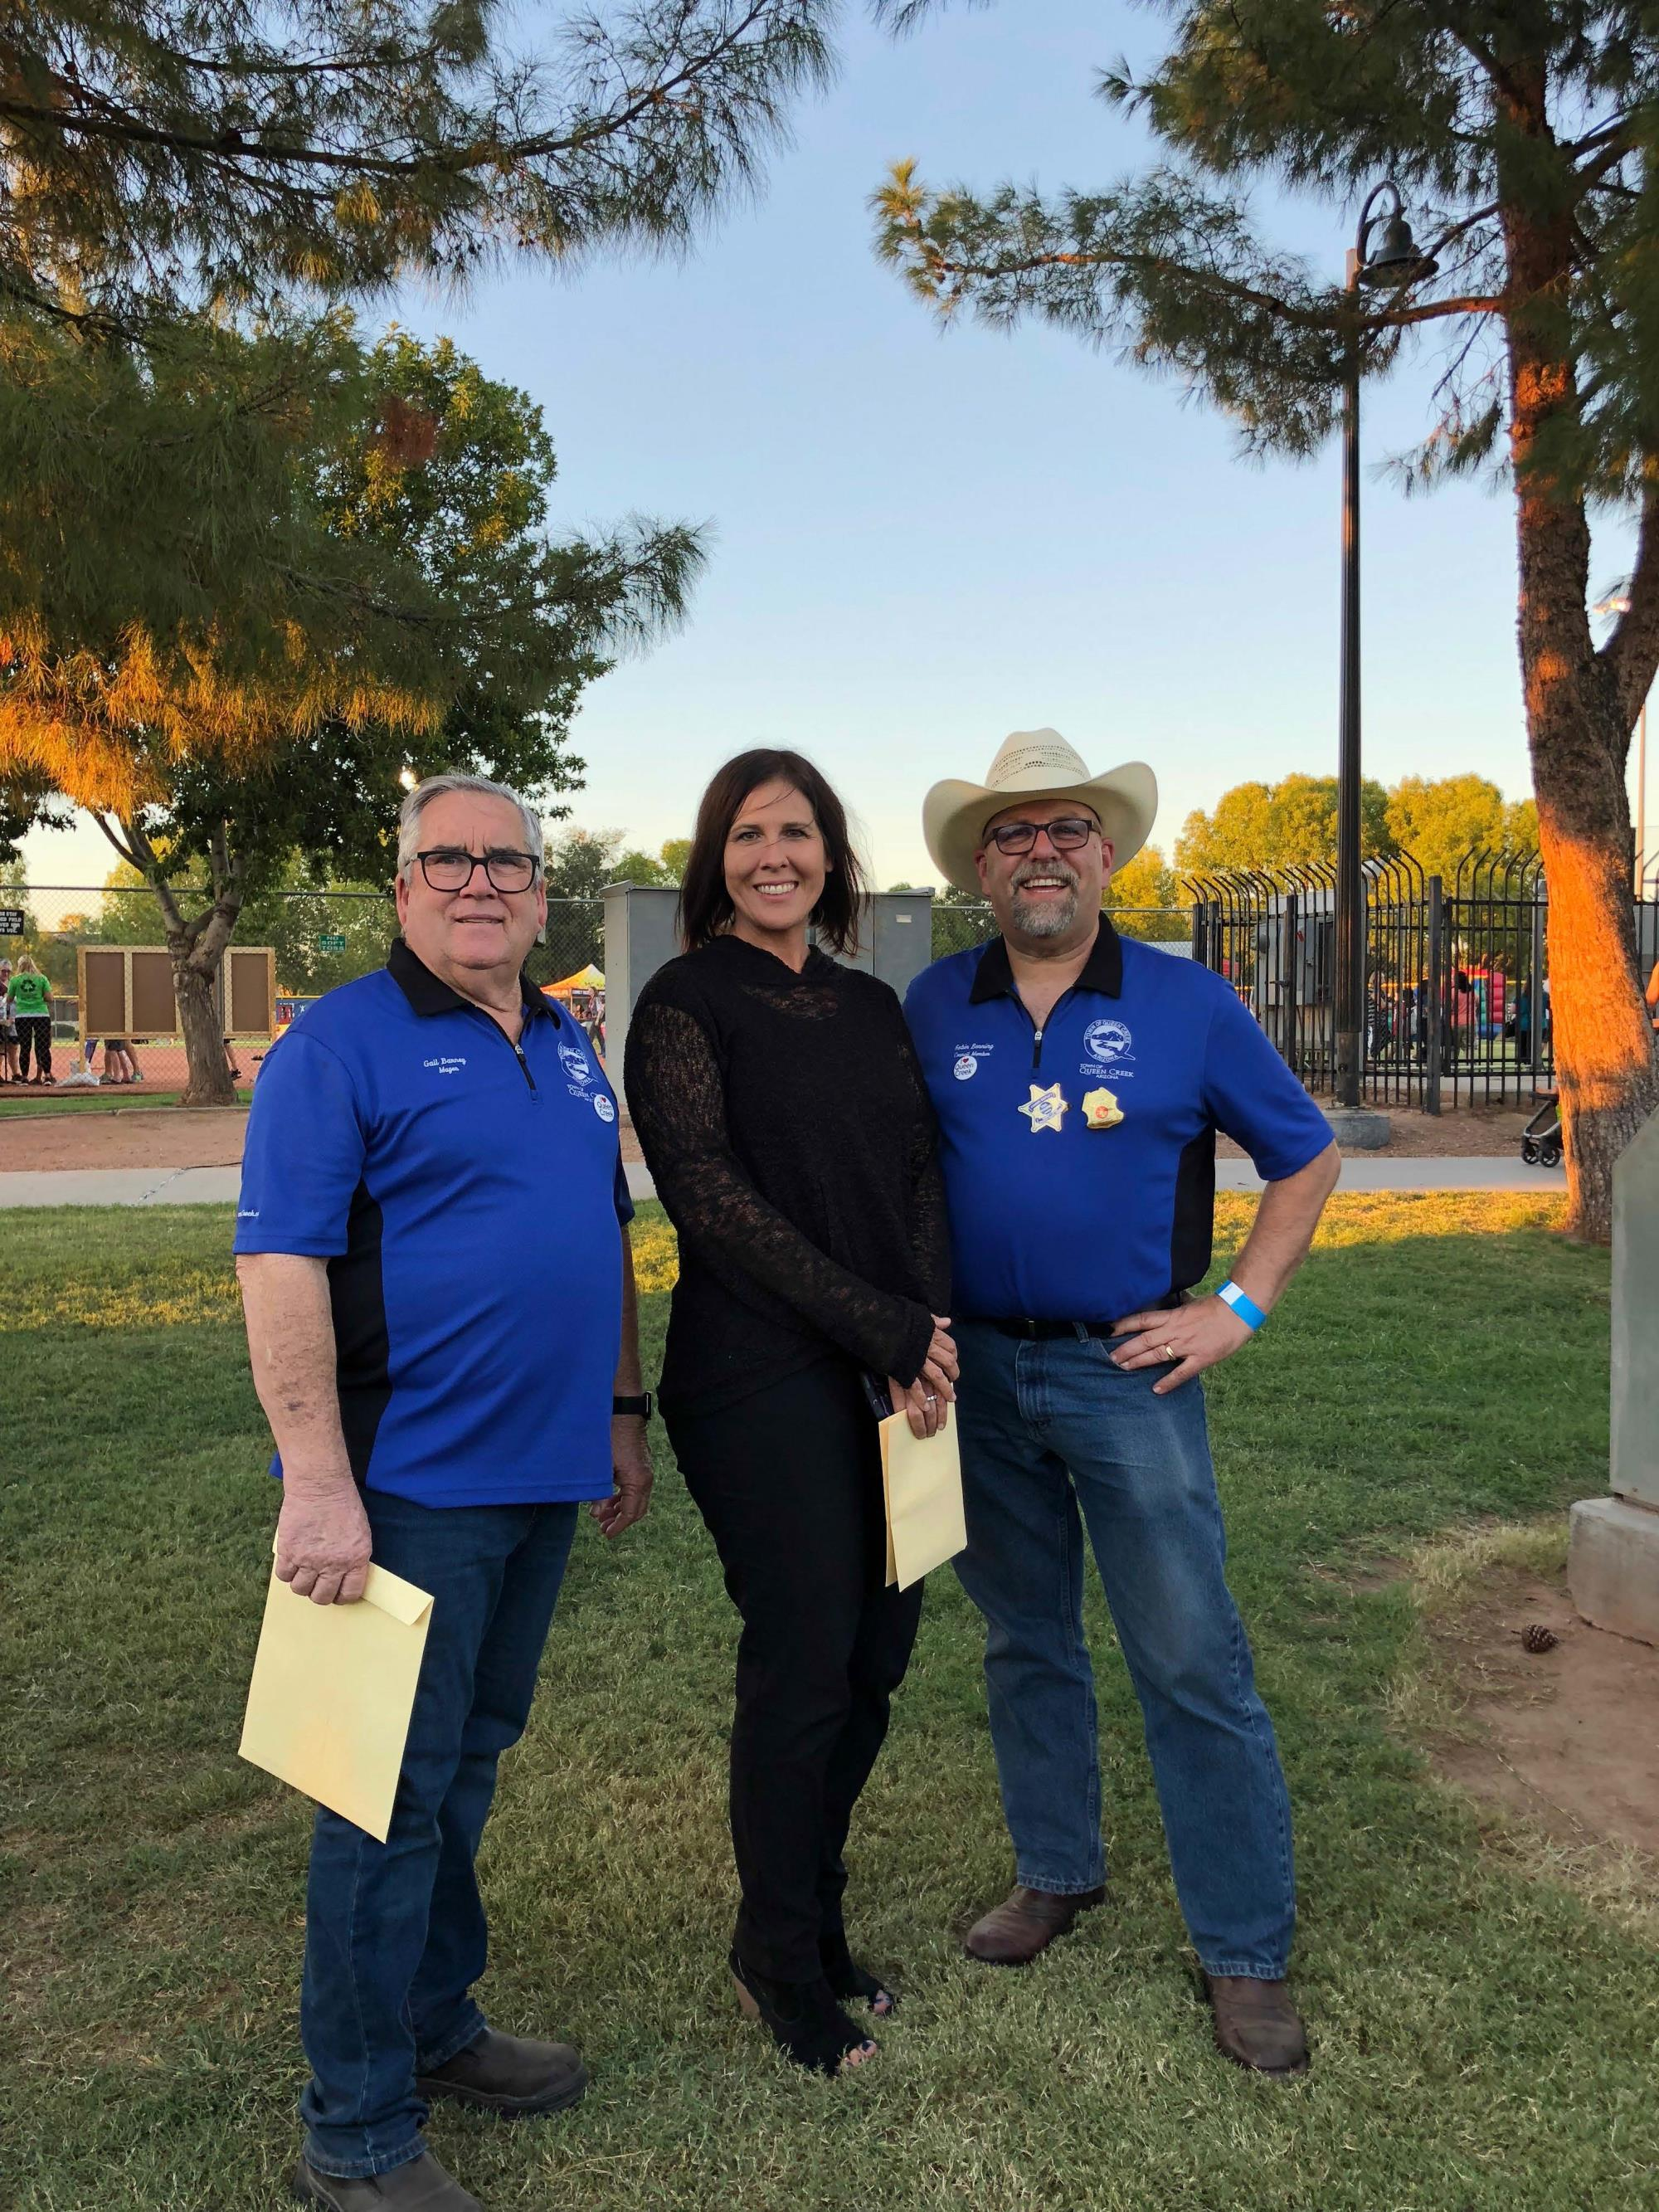 Mayor Barney with Vice Mayor Turley and Council Member Benning at Founder's Day on September 22